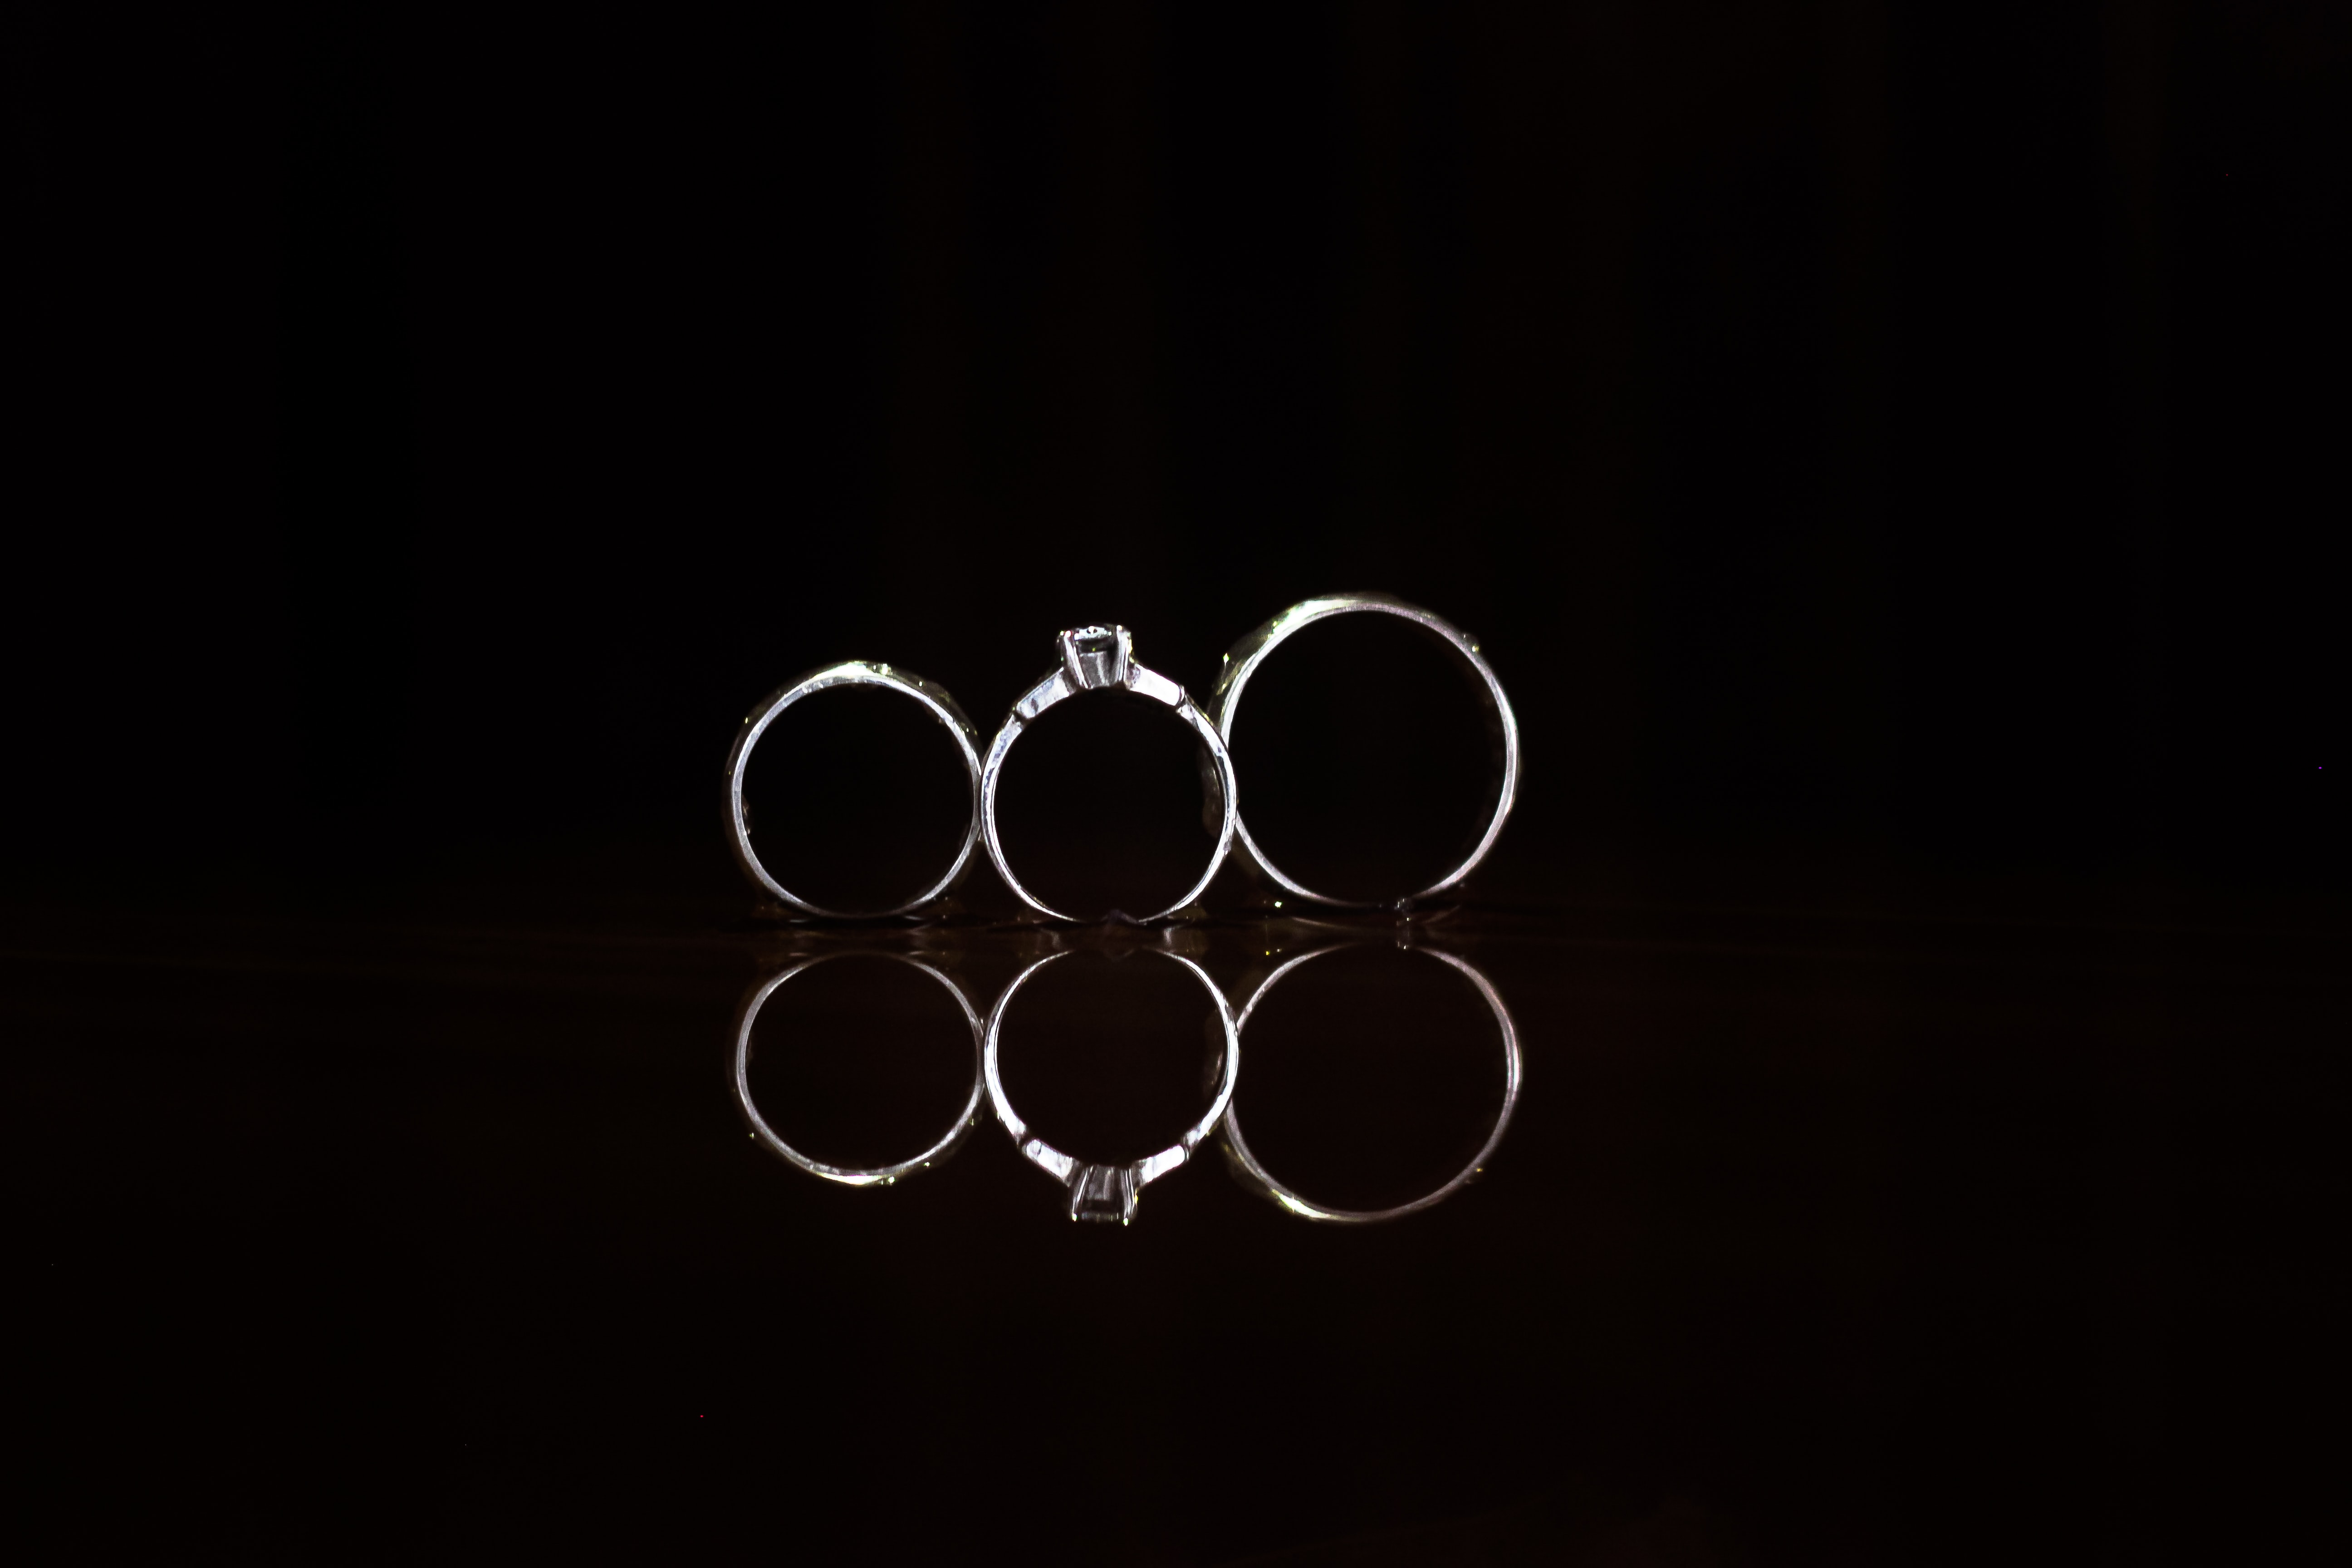 closeup photography of three silver-colored rings